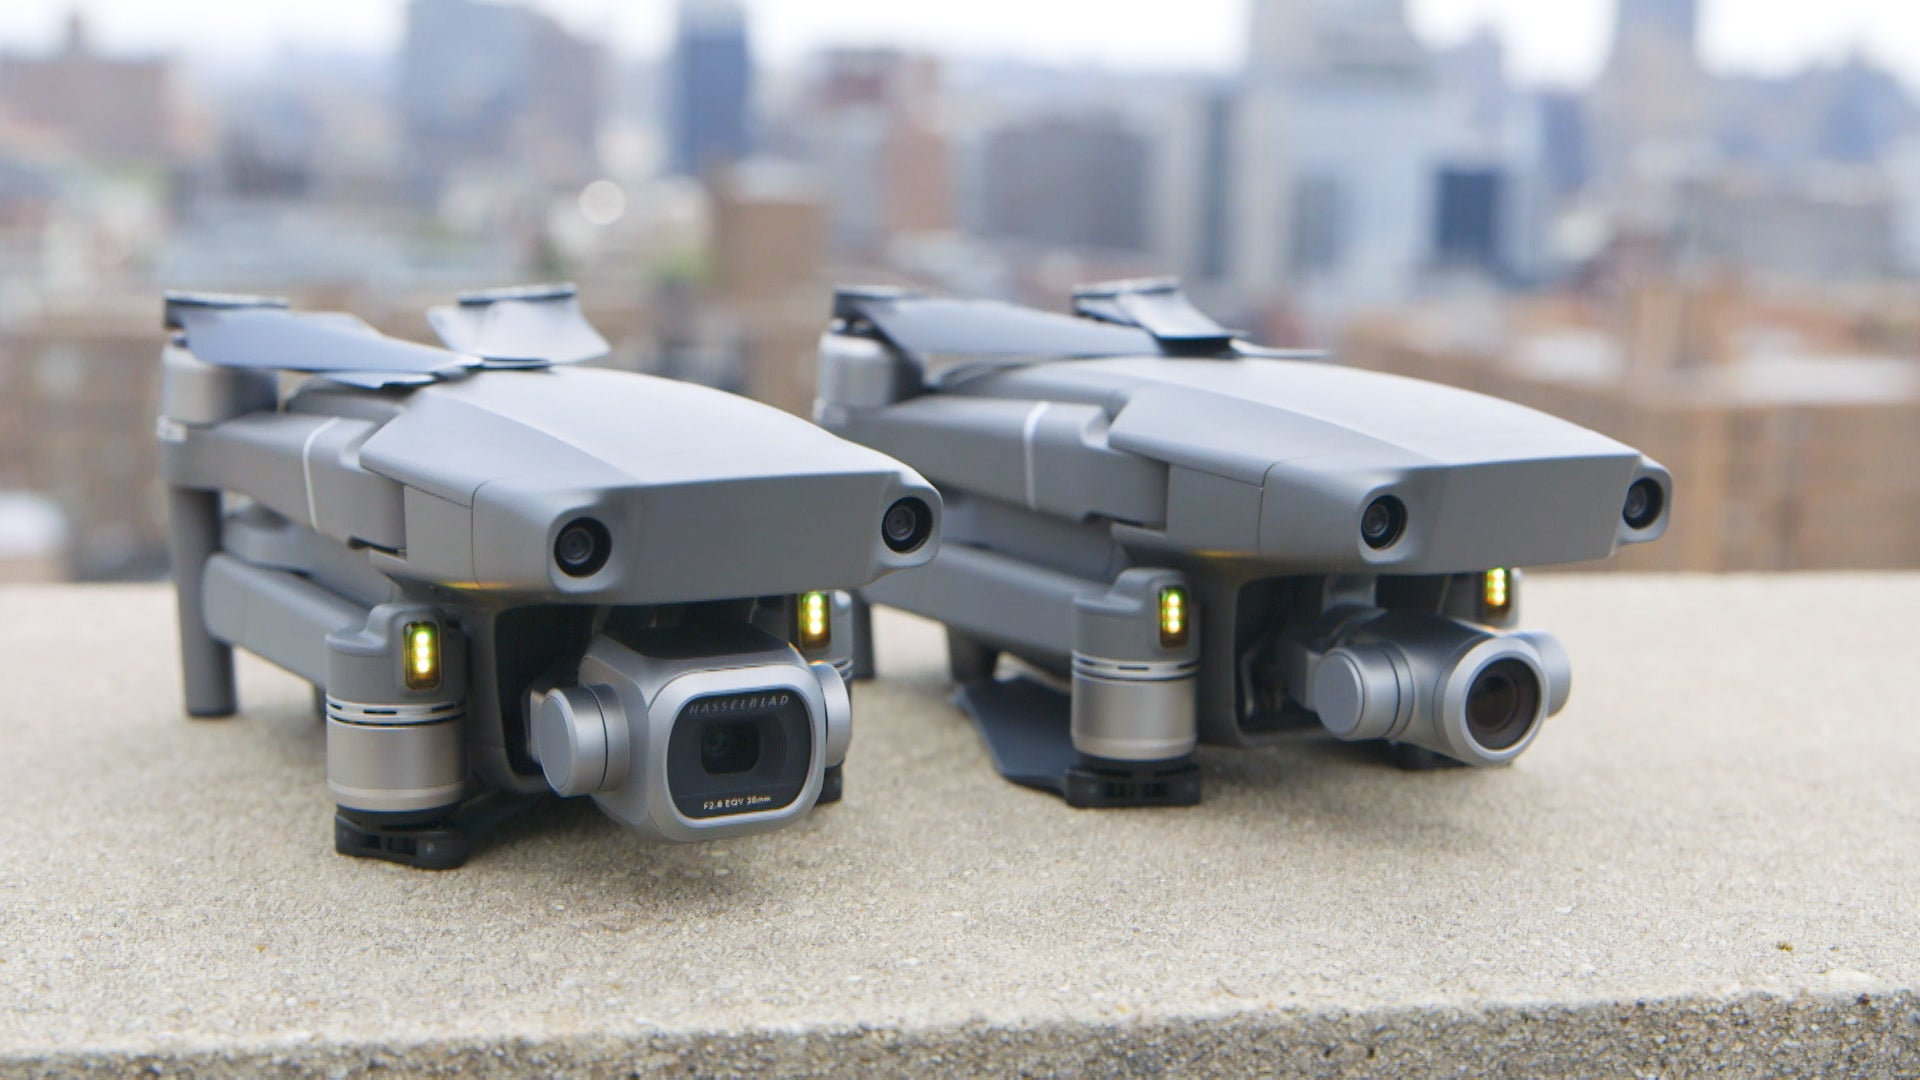 DJI's Mavic 2 Series Drones Come With More Powerful Cameras And So Many Sensors